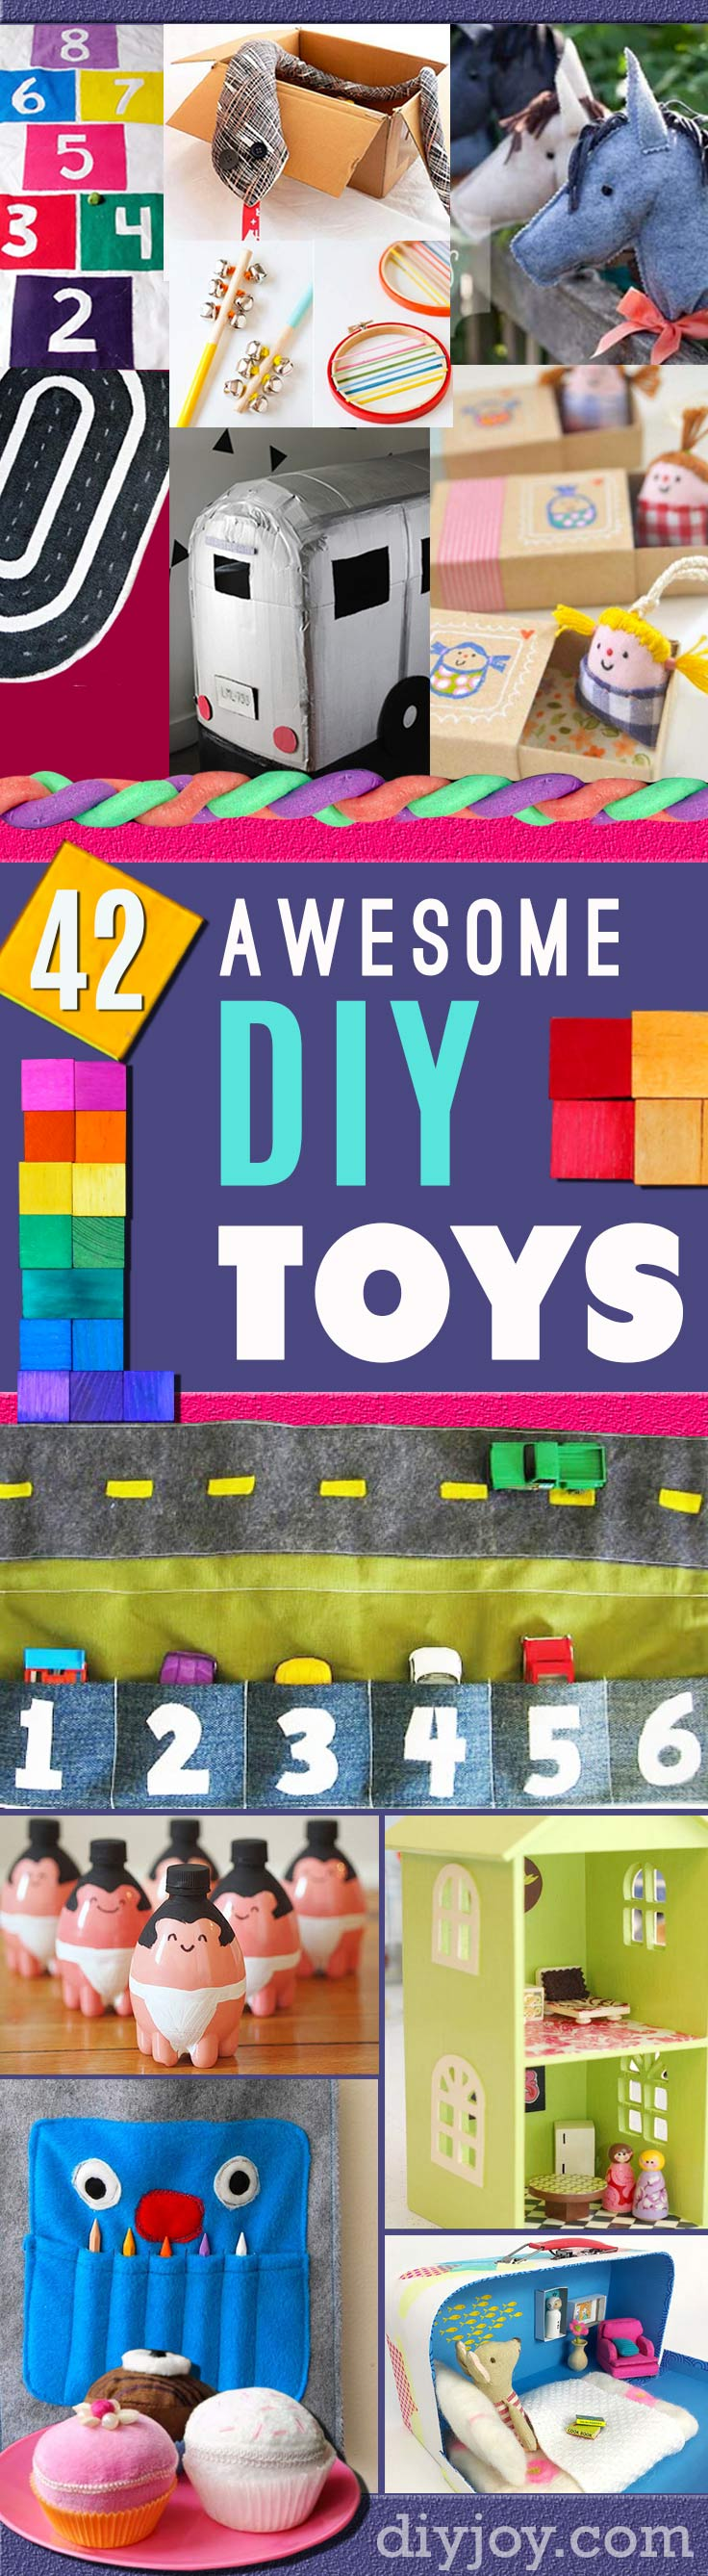 DIY Christmas Gifts for Kids - Homemade Christmas Presents for Children and Christmas Crafts for Kids | Toys, Dress Up Clothes, Dolls and Fun Games | Step by Step tutorials and instructions for cool gifts to make for boys and girls